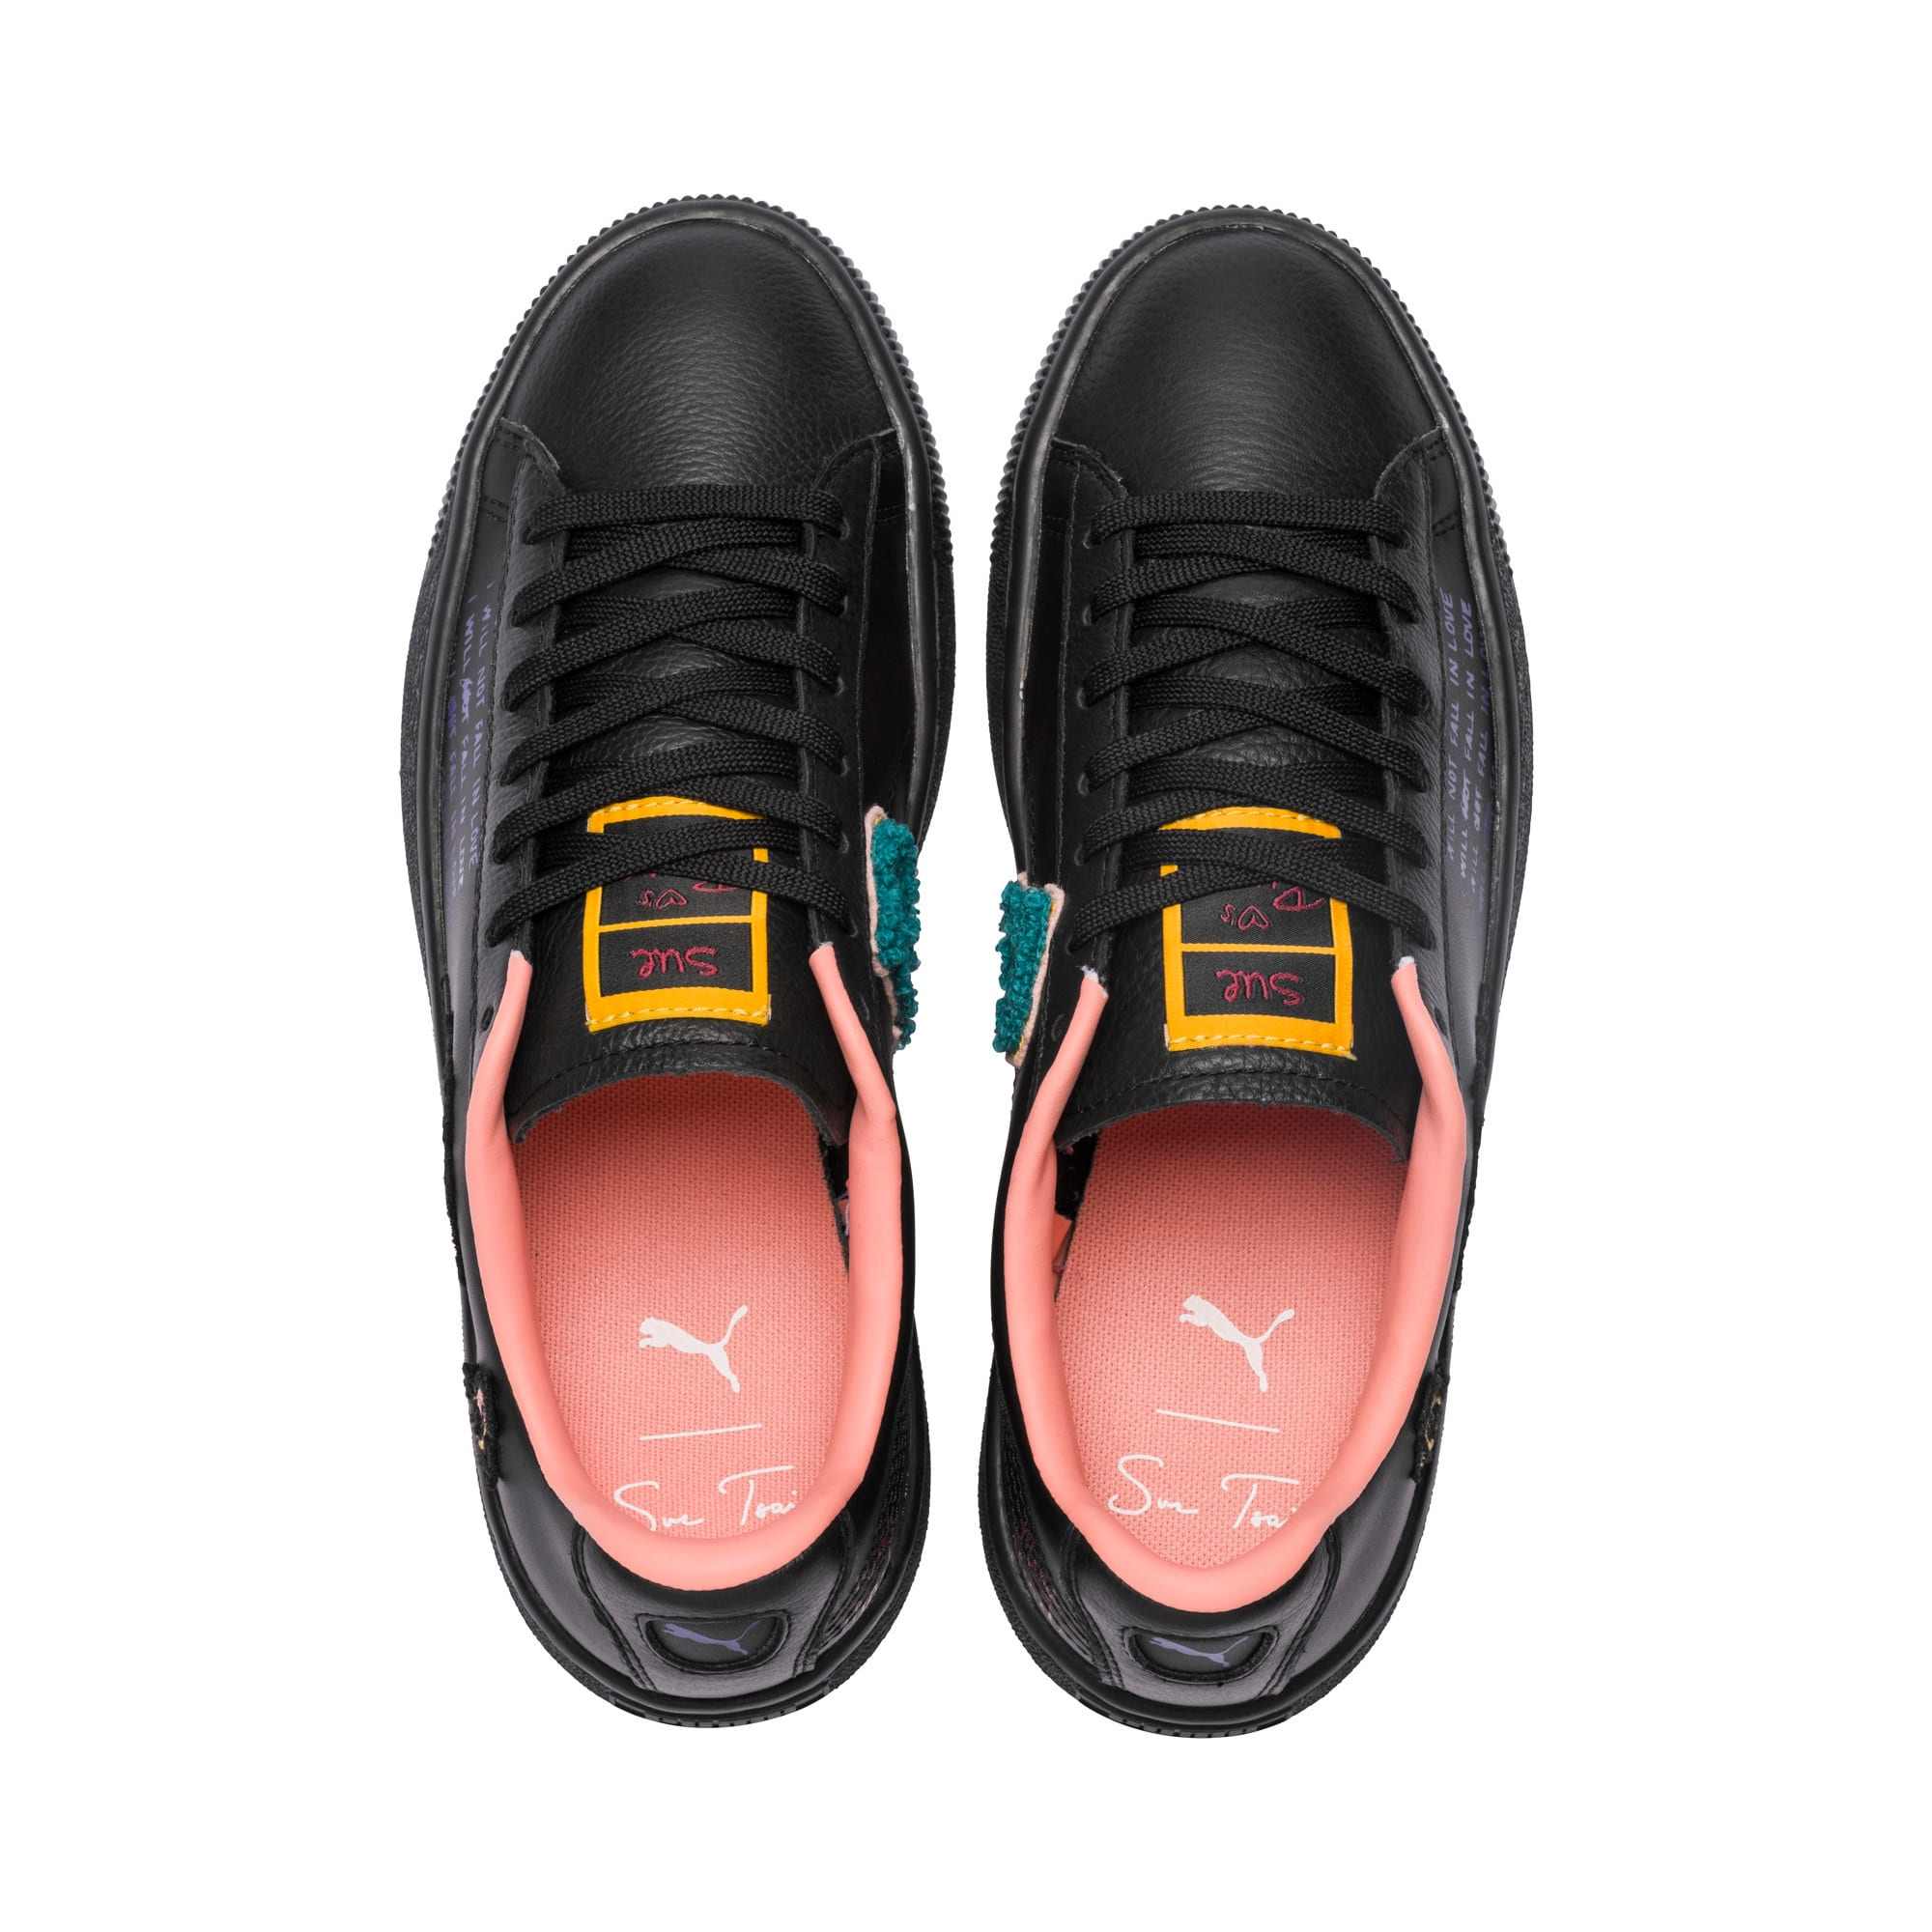 Thumbnail 6 of PUMA x SUE TSAI Basket Women's Trainers, Puma Black, medium